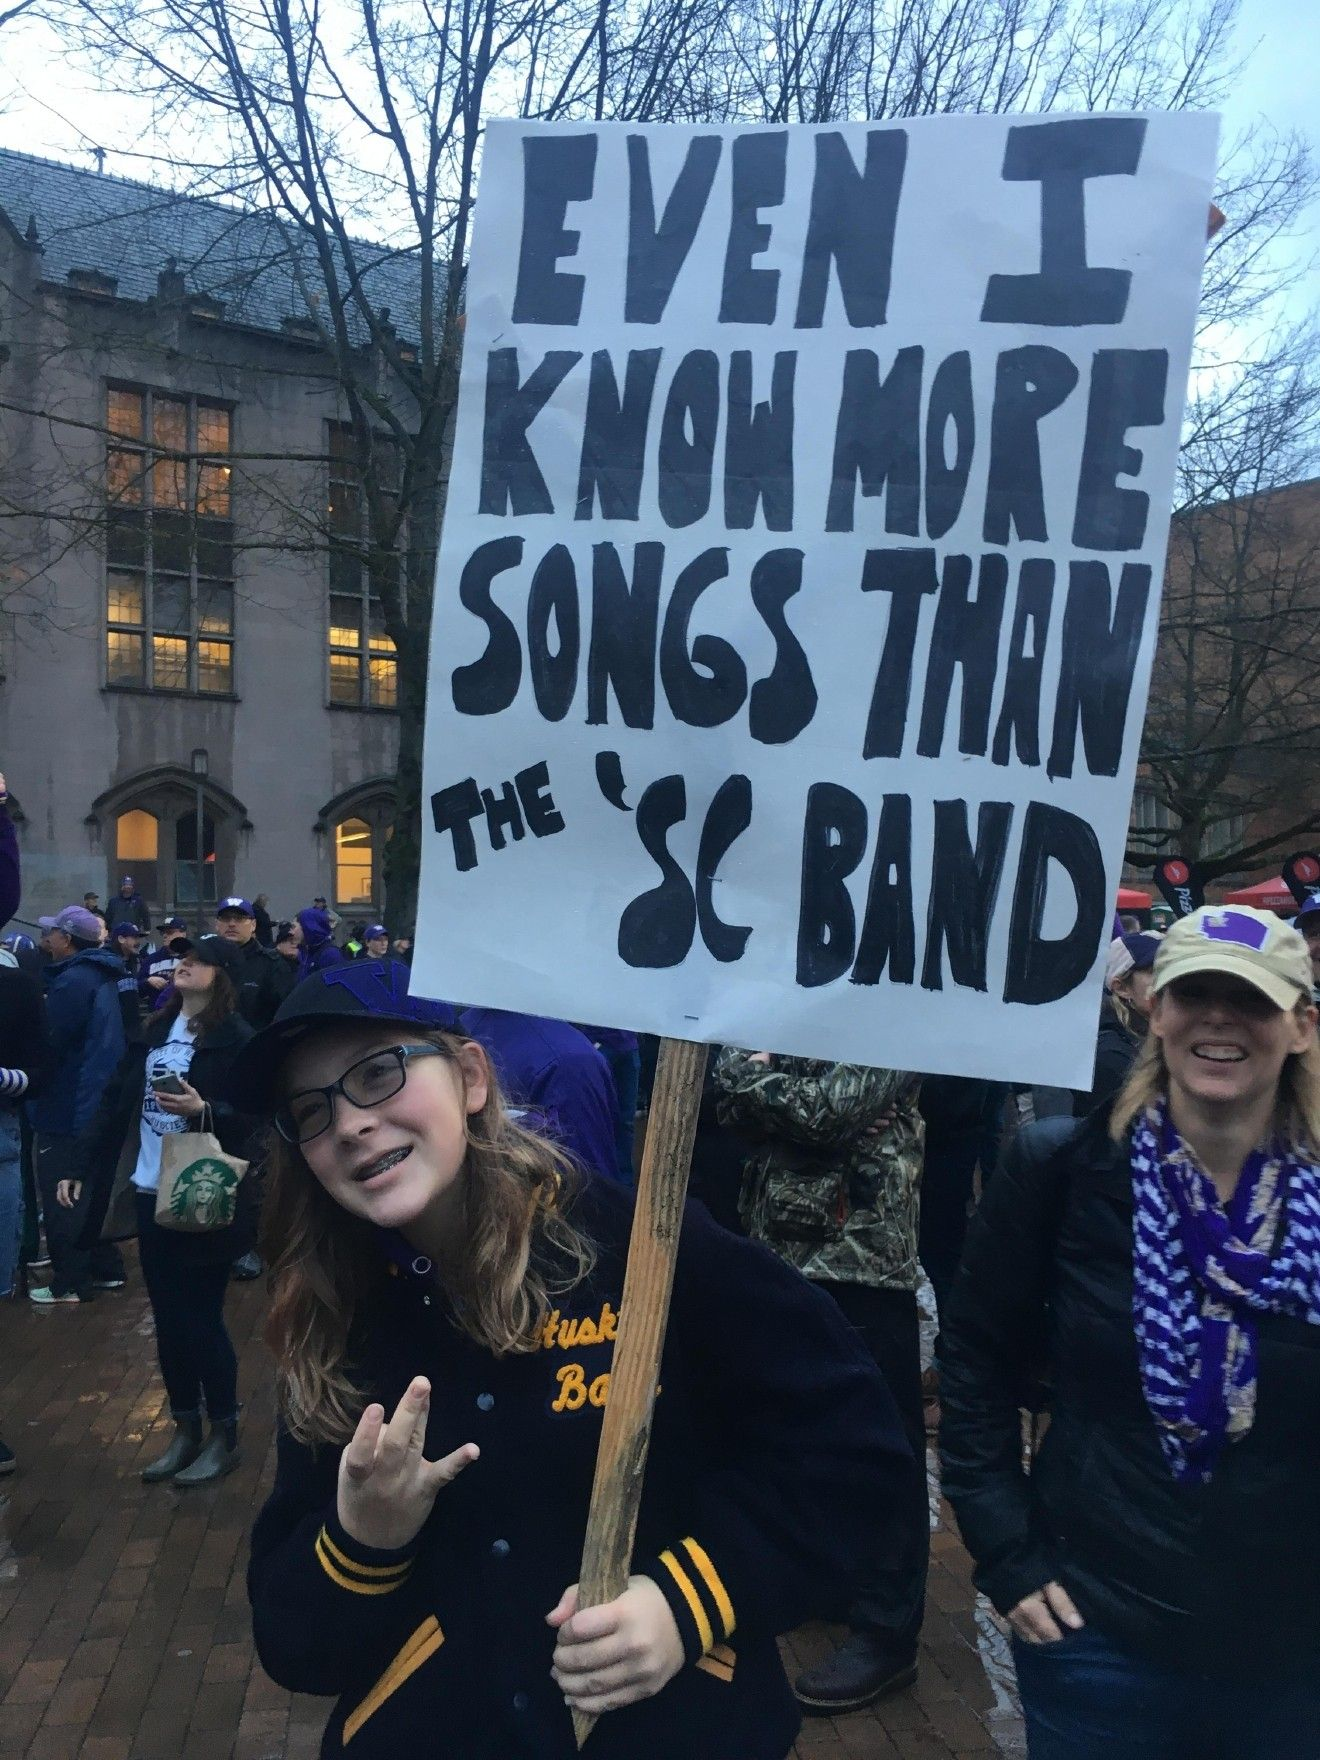 This Morning Hundreds Of Football Fans Came Out For Espn College Gameday At Red Square At The University Of Washington Gameday Trav Gameday Espn Football Fans